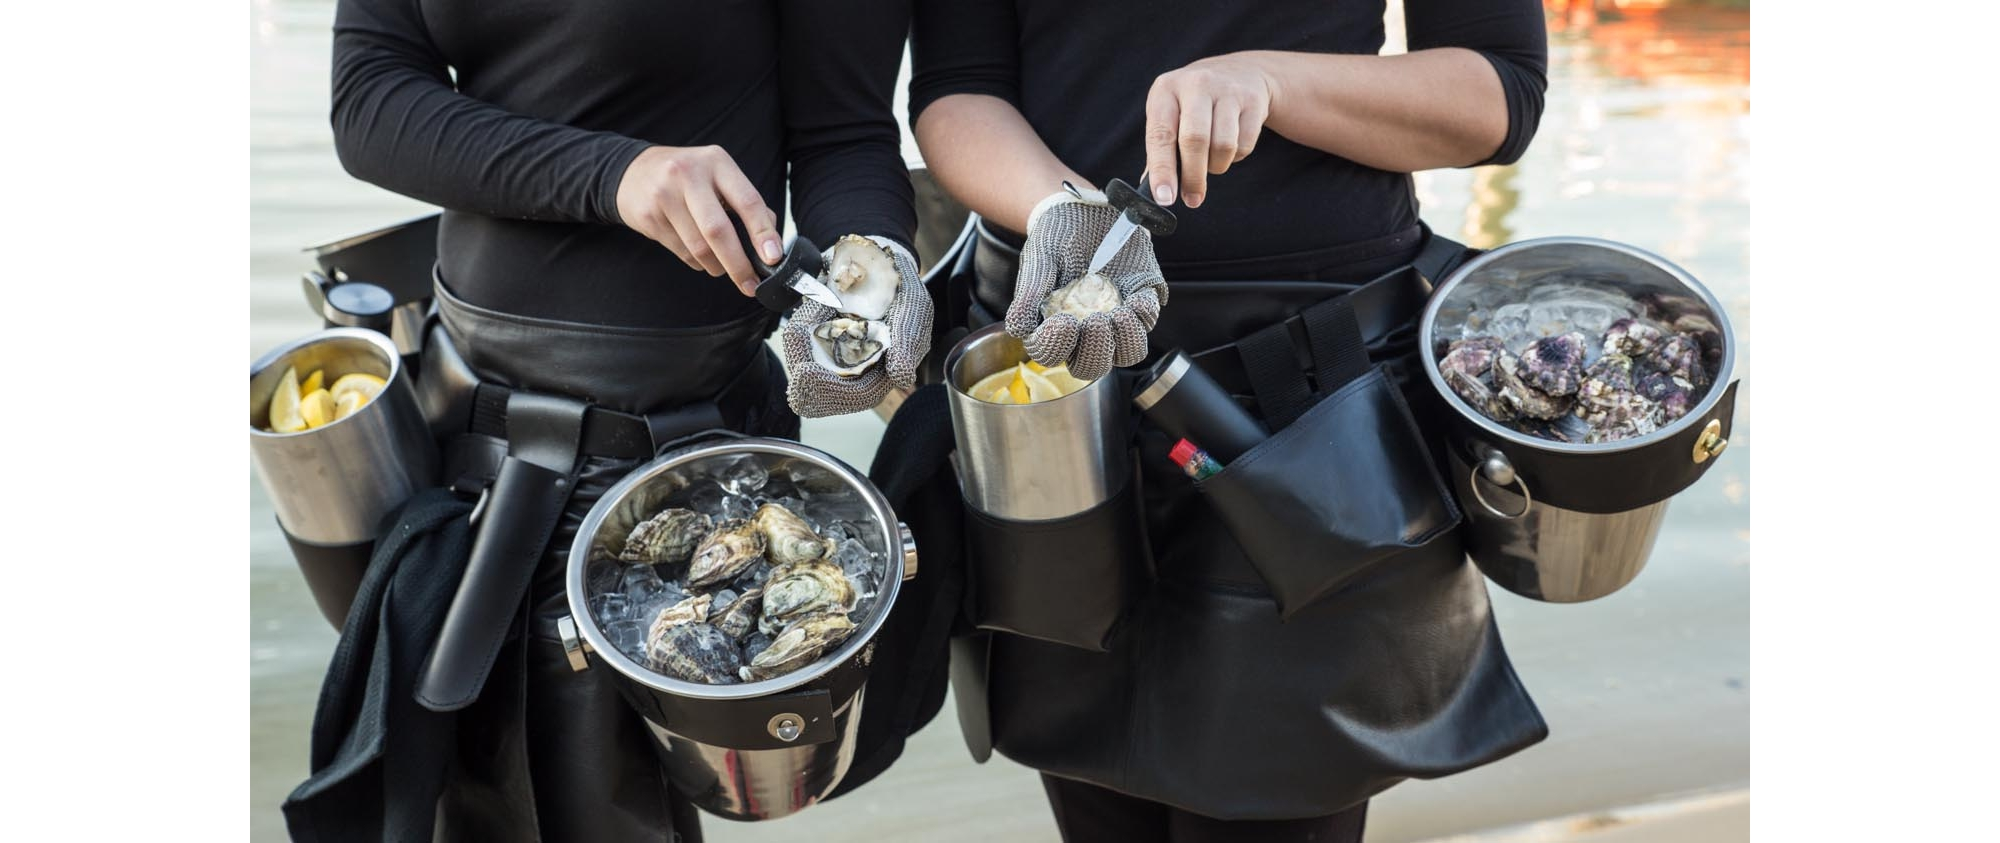 Our innovative oyster belts ensure our wonderful staff can reach each and everyone at the party!